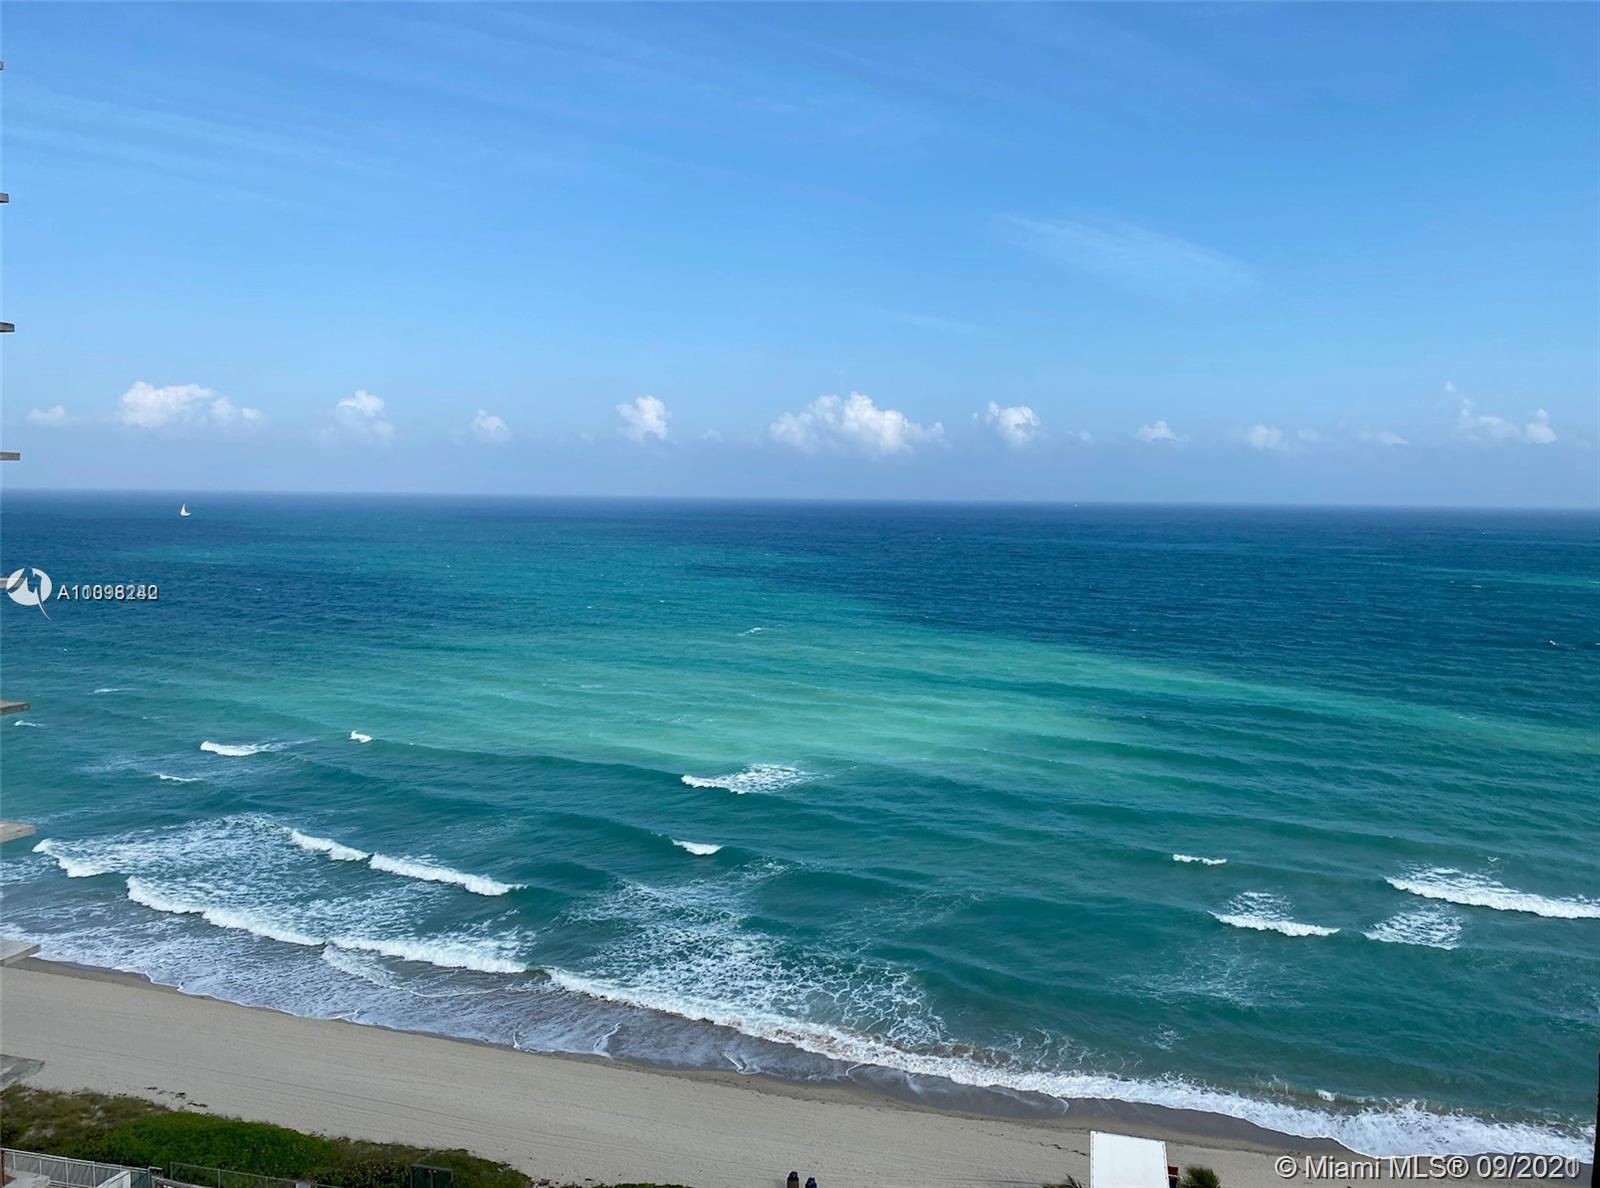 DIRECT-UNOBSTRUCTED 160* OCEAN VIEW! ABSOLUTELY BREATHTAKING! DIRECT OCEAN 2/2. 1466 SQ FEET INCLUDE